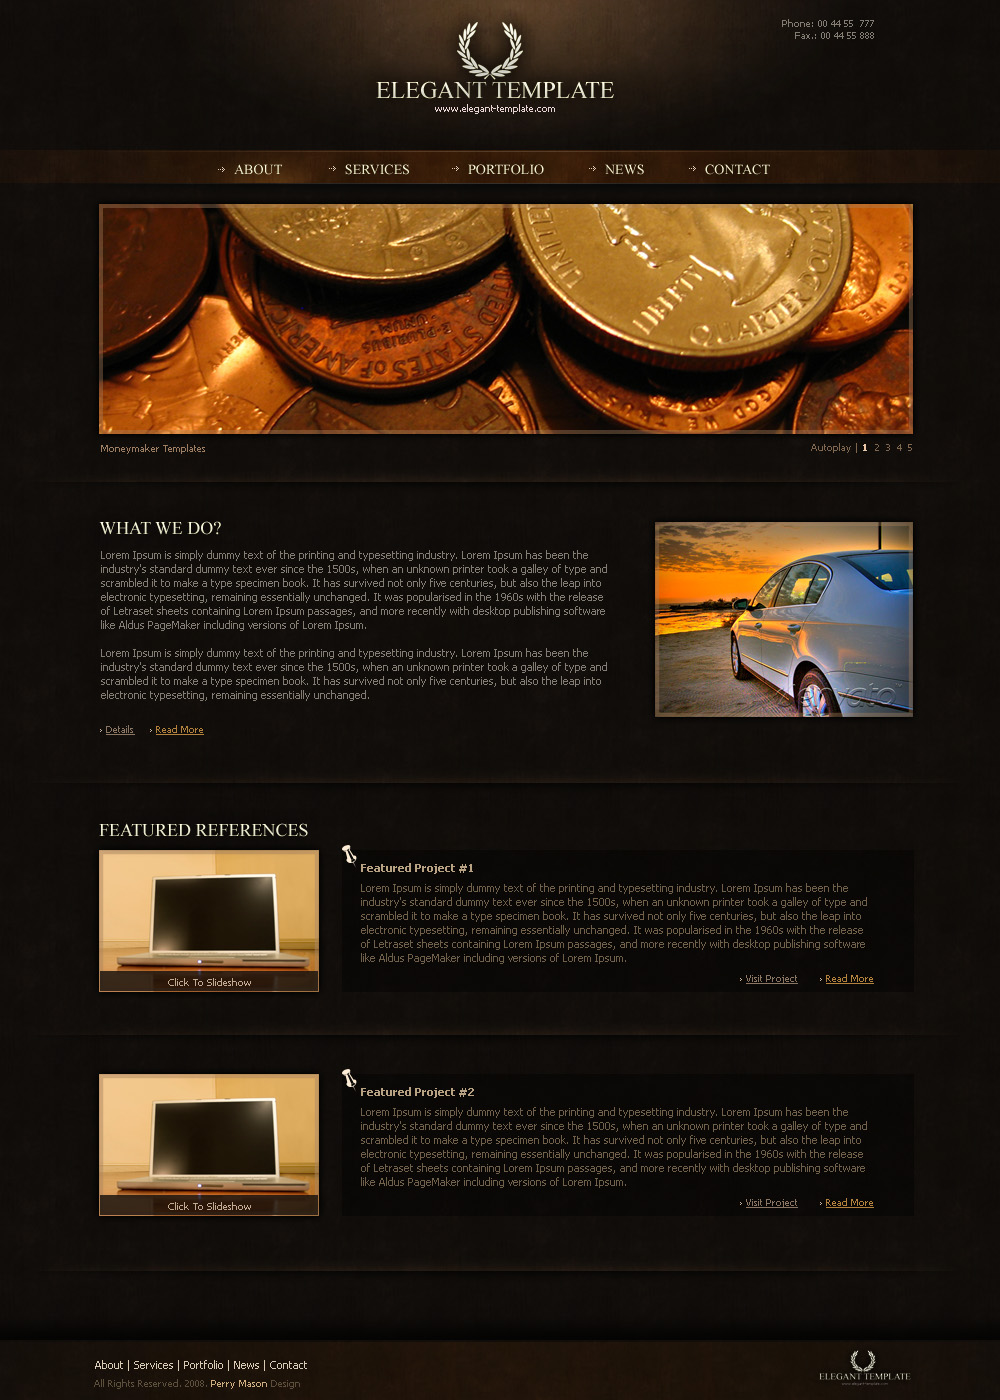 Elegant Unique Template - *********************************************************